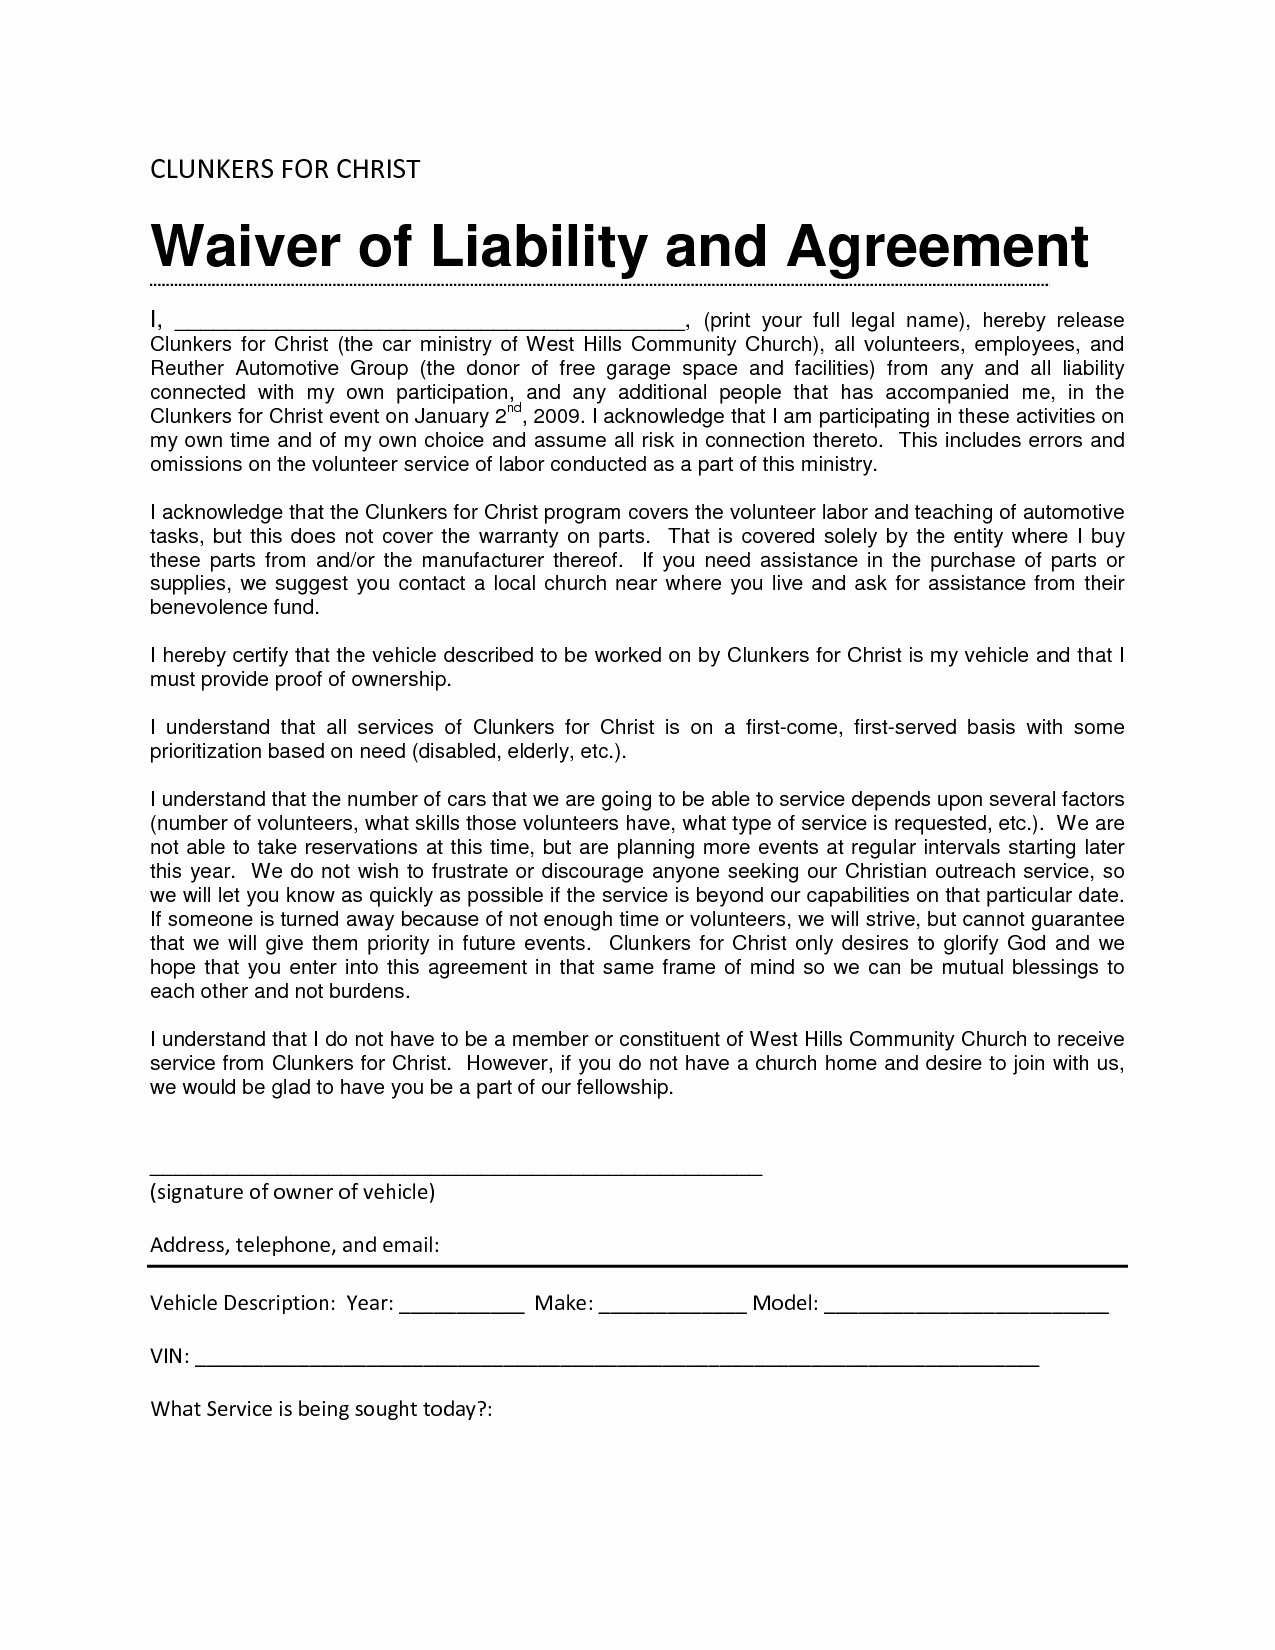 Free Liability Waiver Template Inspirational Liability Waiver Sample Bamboodownunder